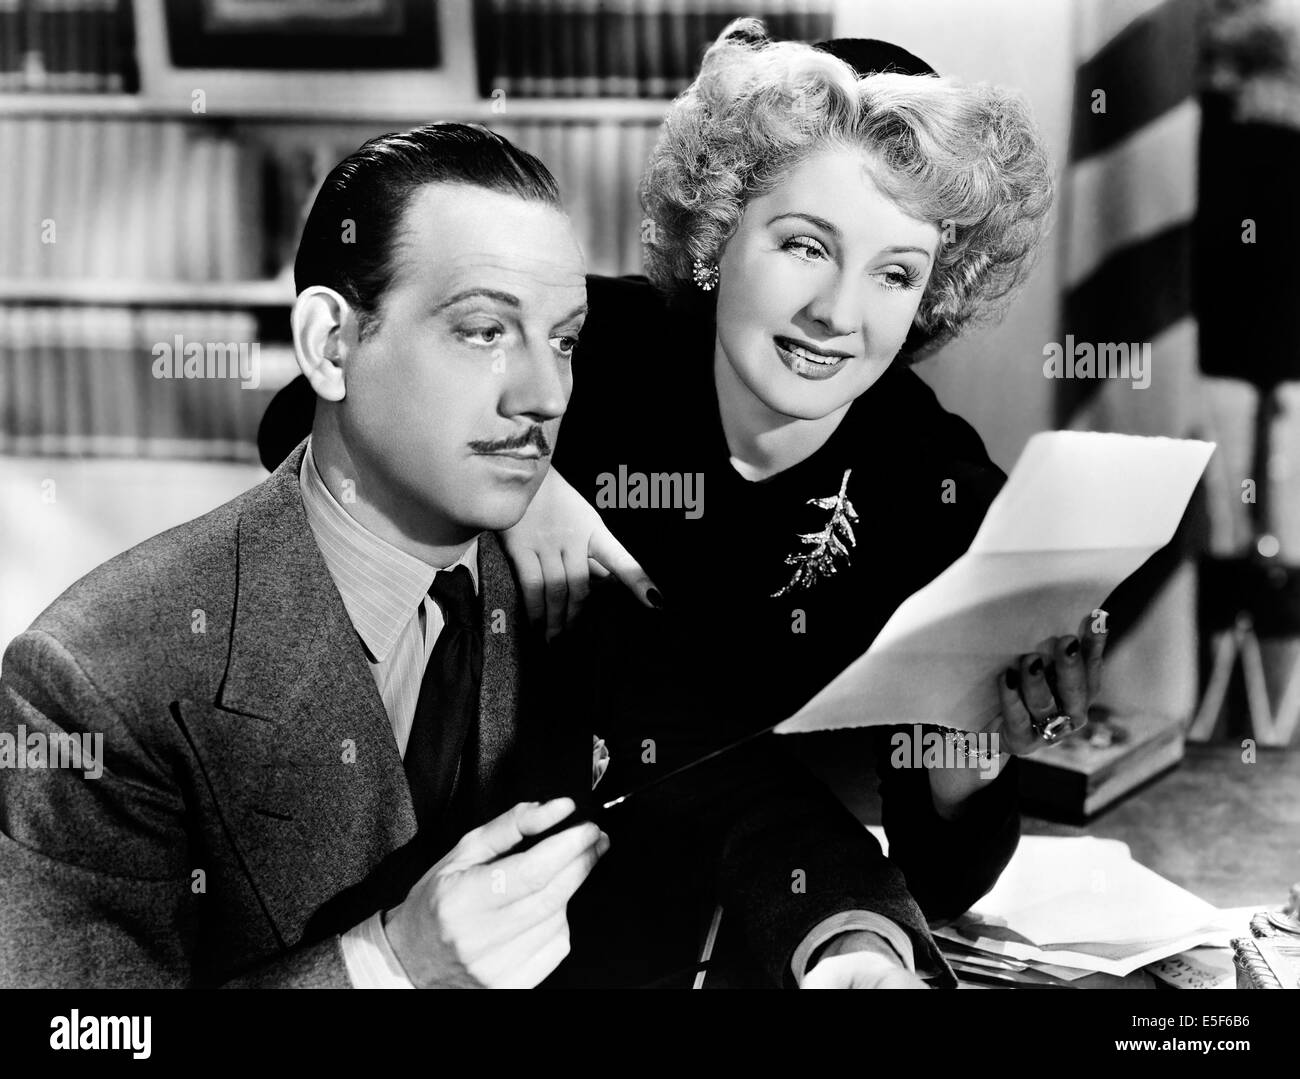 WE WERE DANCING 1942 MGM film with Norma Shearer and Melvyn Douglas - Stock Image